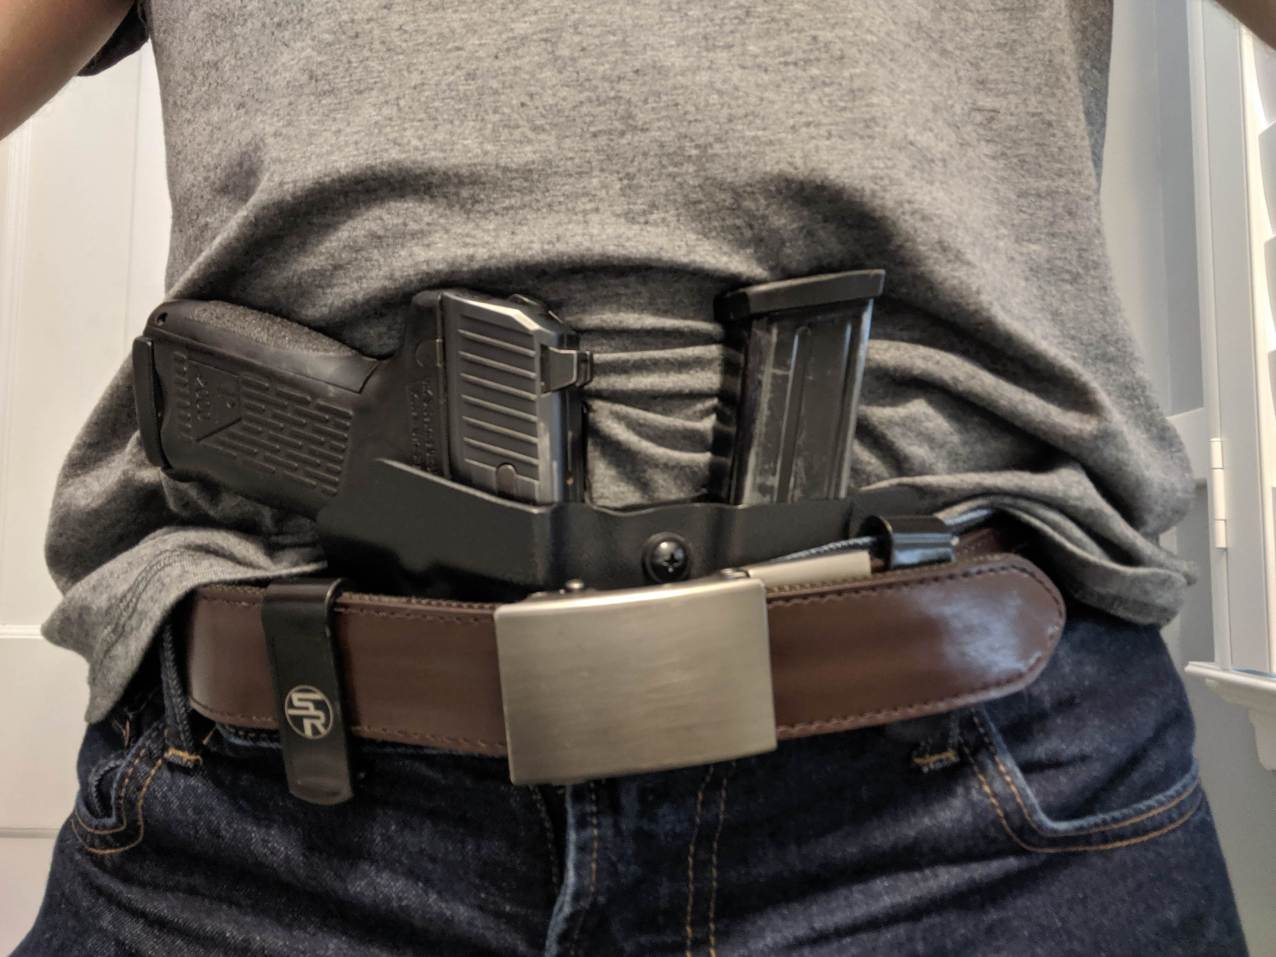 Stay Ready Gear Full House AIWB Holster Pictures